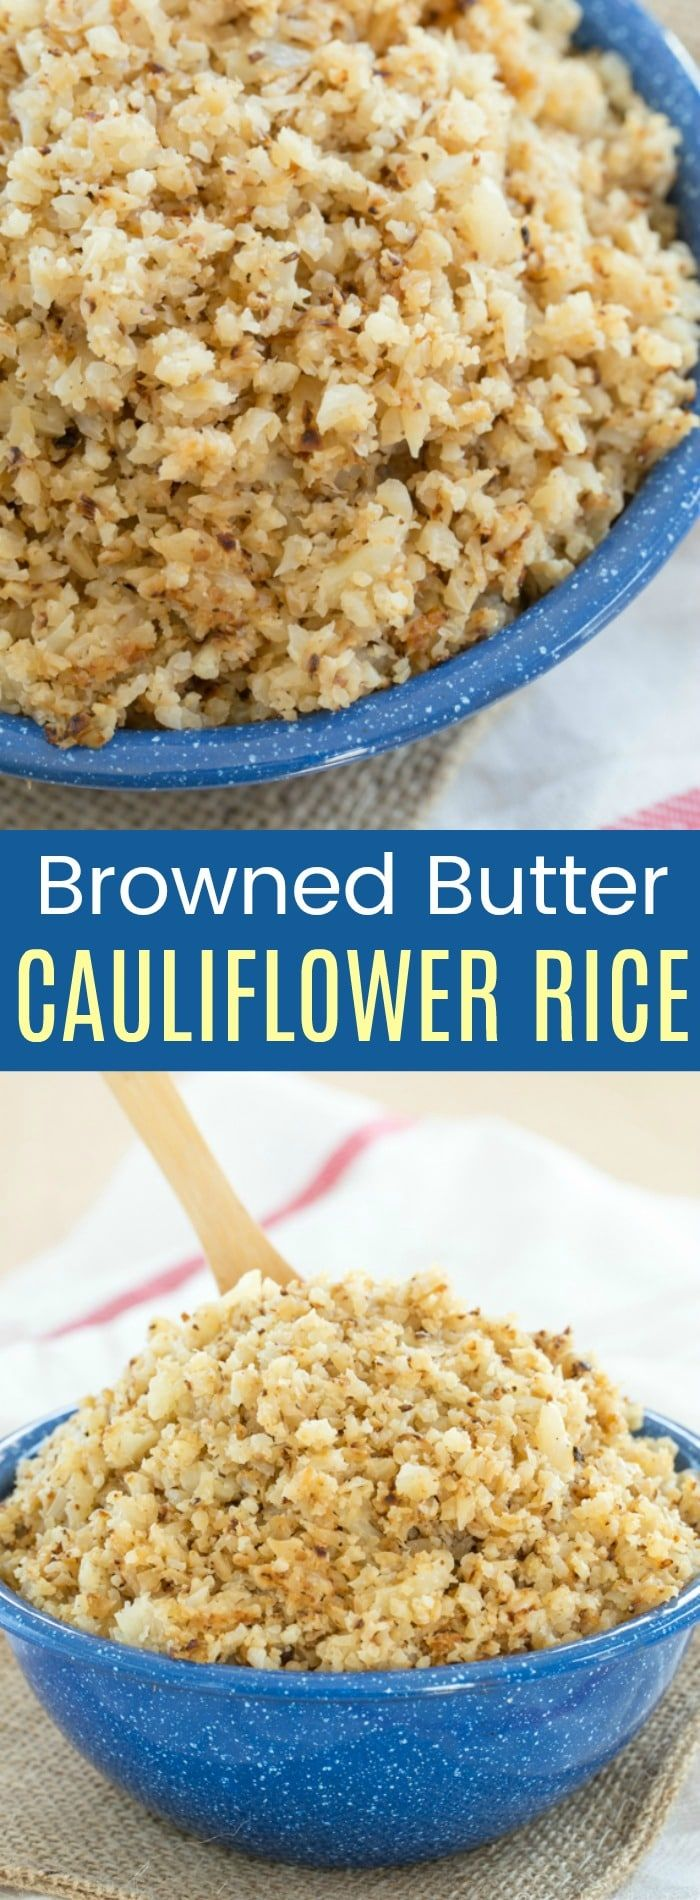 Browned Butter Cauliflower Rice - an easy side dish recipe that will get the whole family eating their vegetables because a little brown butter adds a ton of flavor. Gluten free and low carb, or use ghee to make it paleo and Whole 30 friendly. #cauliflowerrice #whole30 #whole30recipes #paleo #glutenfreesidedish via @cupcakekalechip